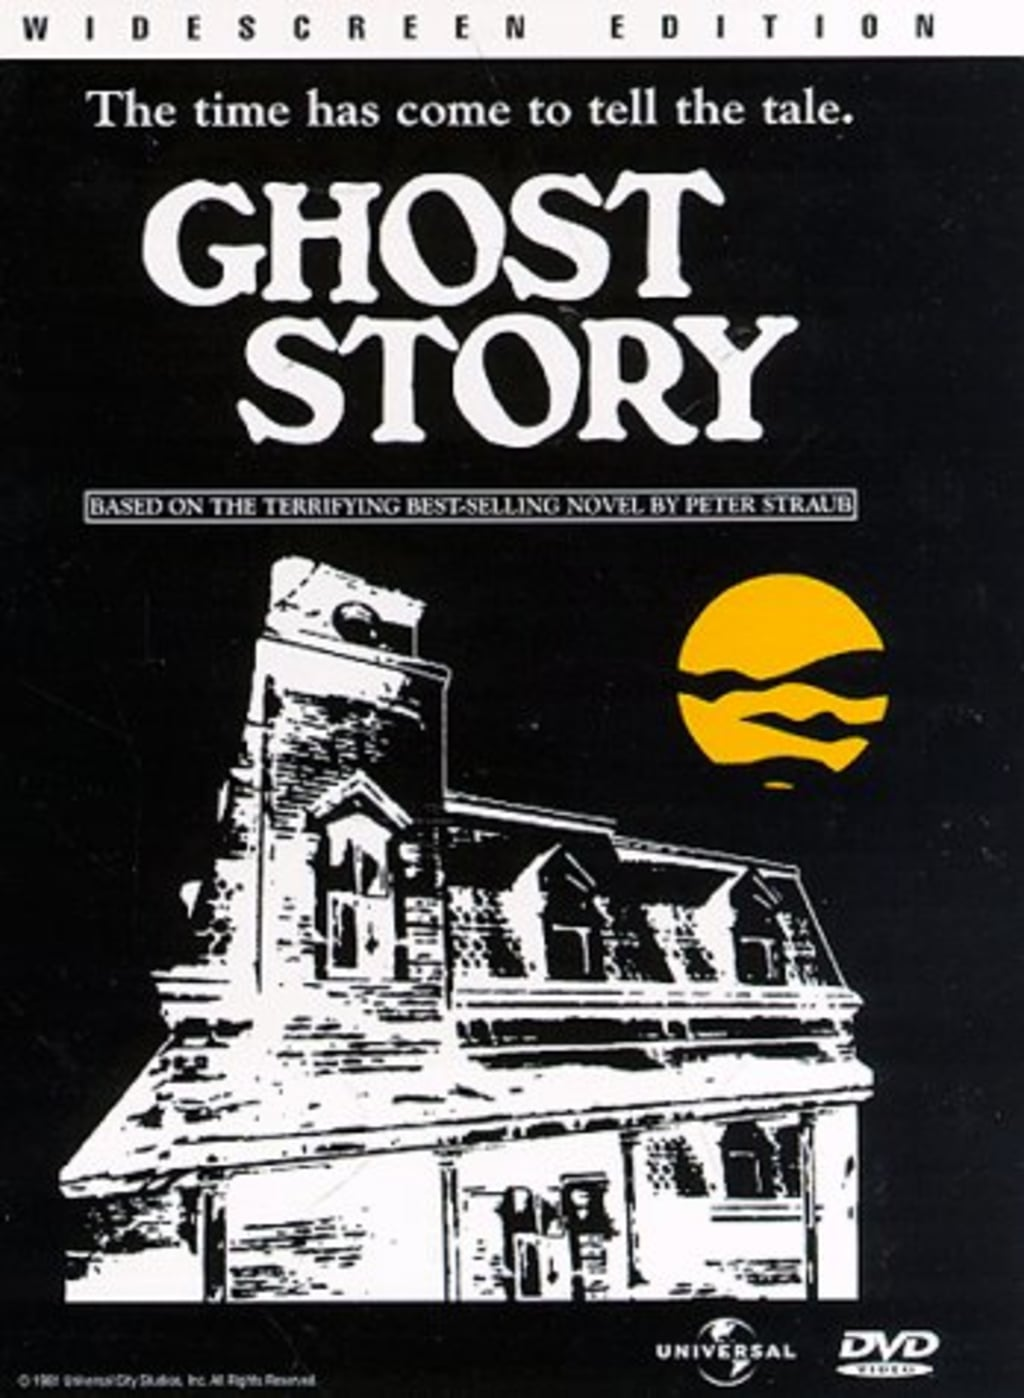 Watch Ghost Story On Netflix Today!